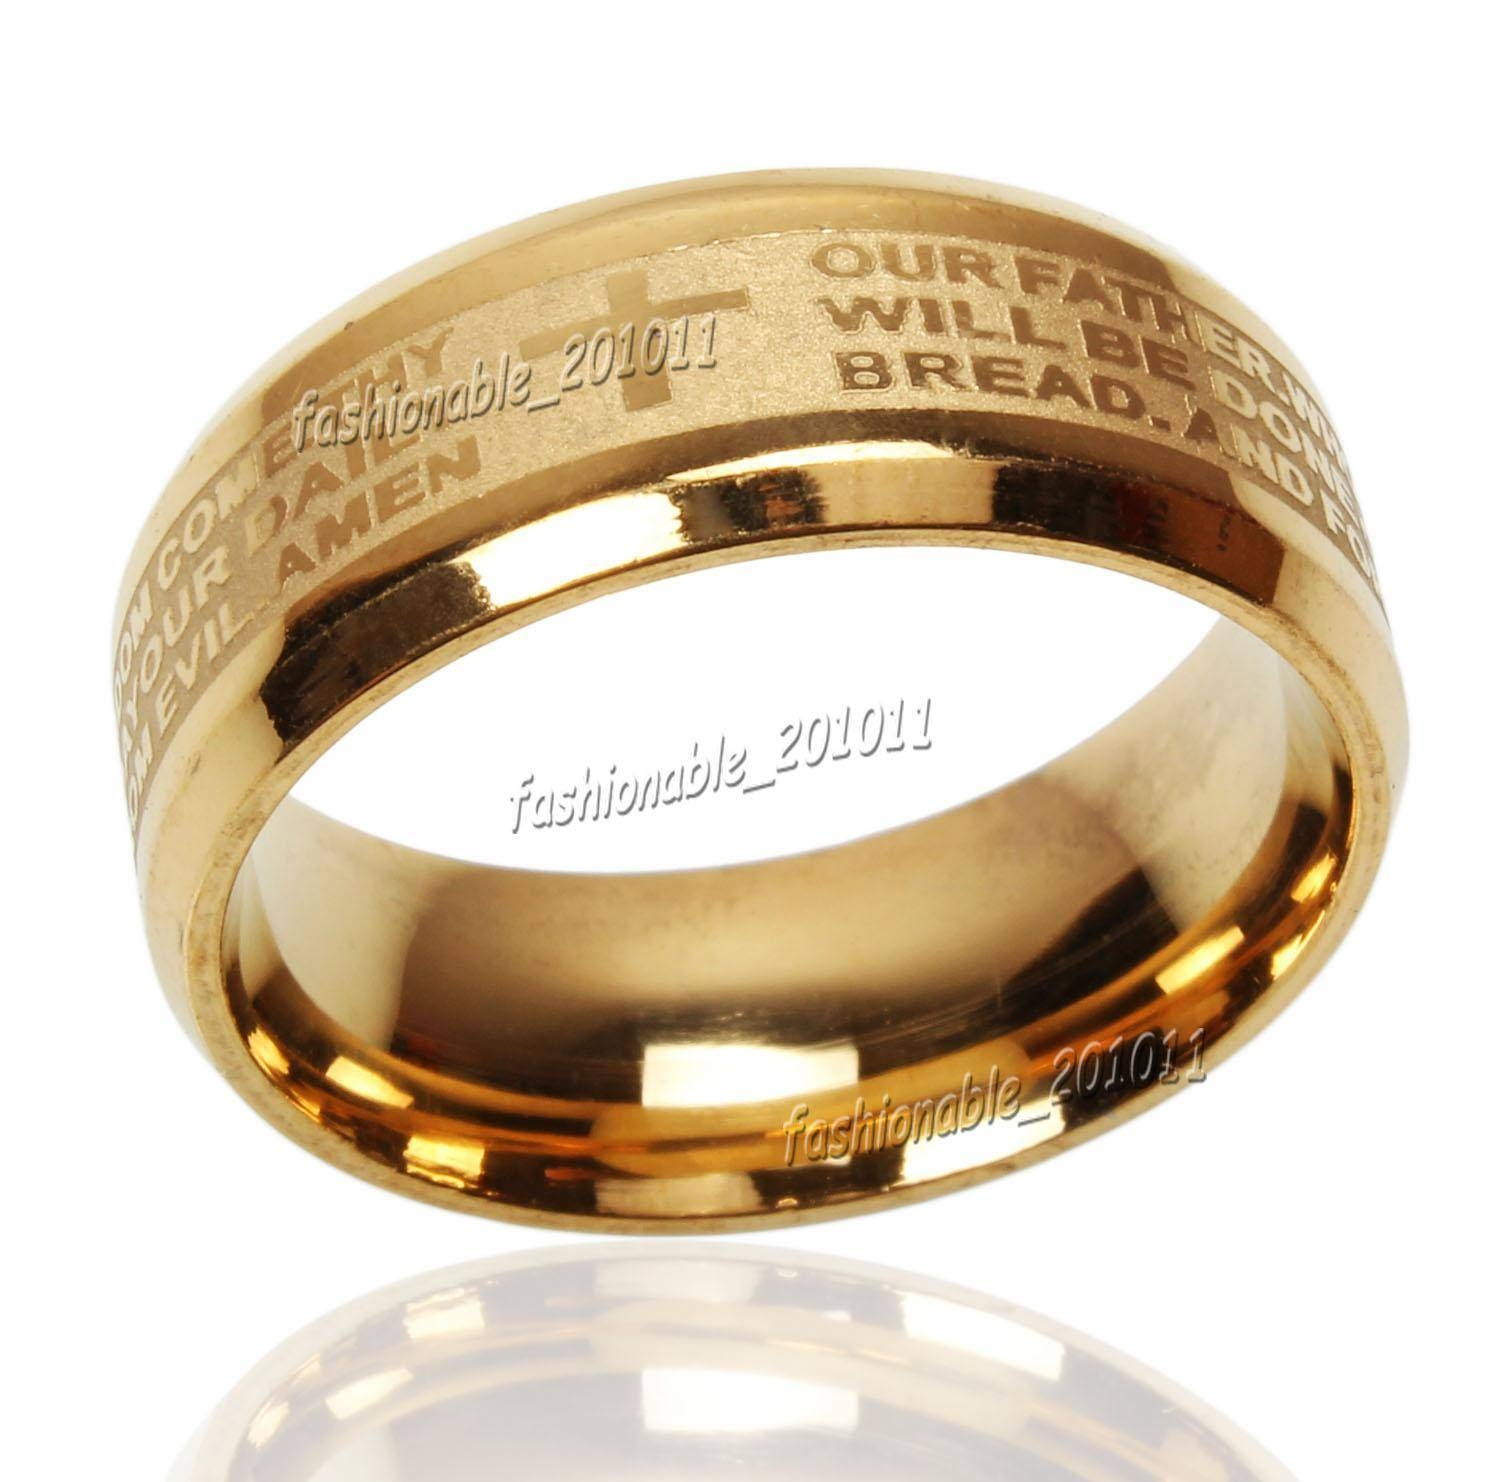 Best Stainless Steel Etched English Lord's Prayer Cross Wedding In Cross Wedding Bands (View 12 of 15)